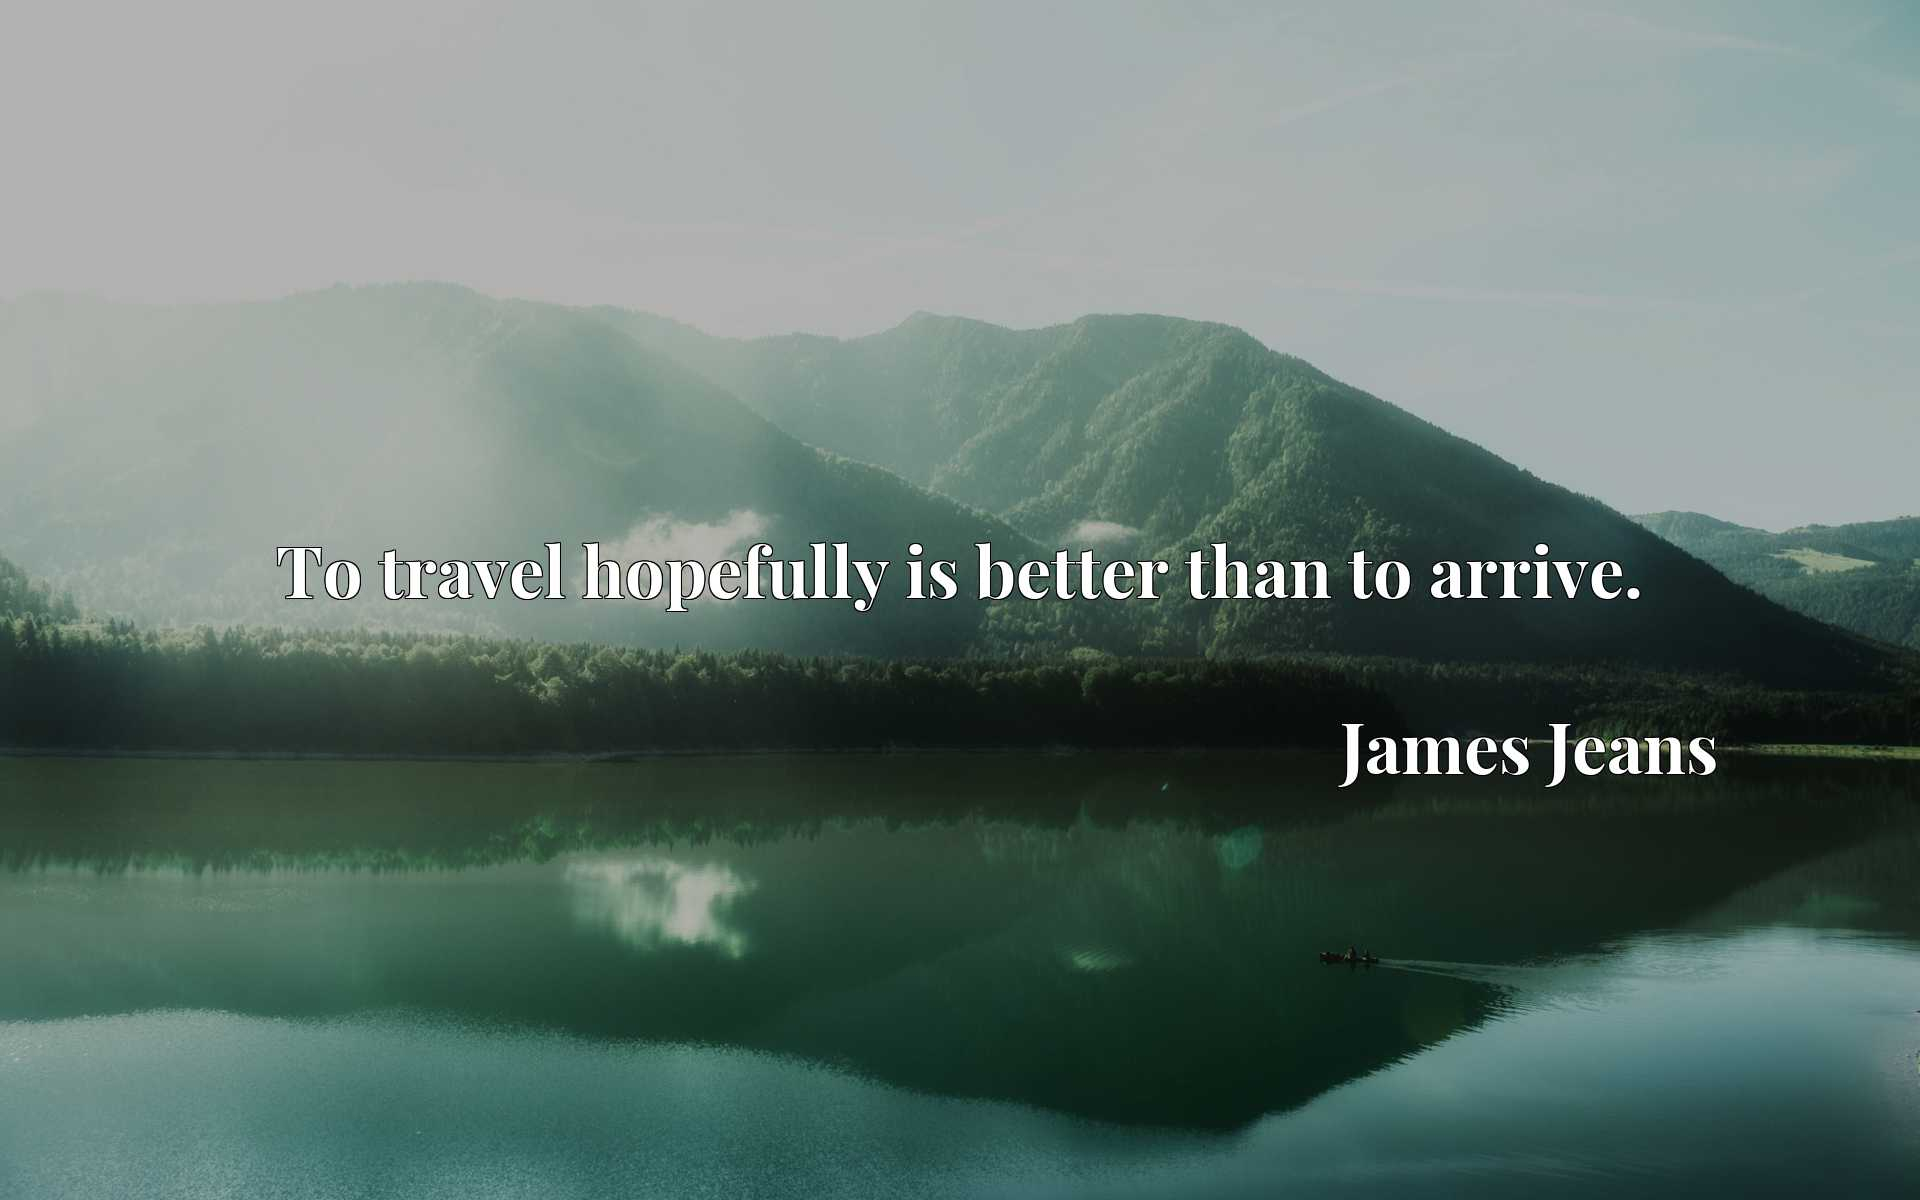 To travel hopefully is better than to arrive.